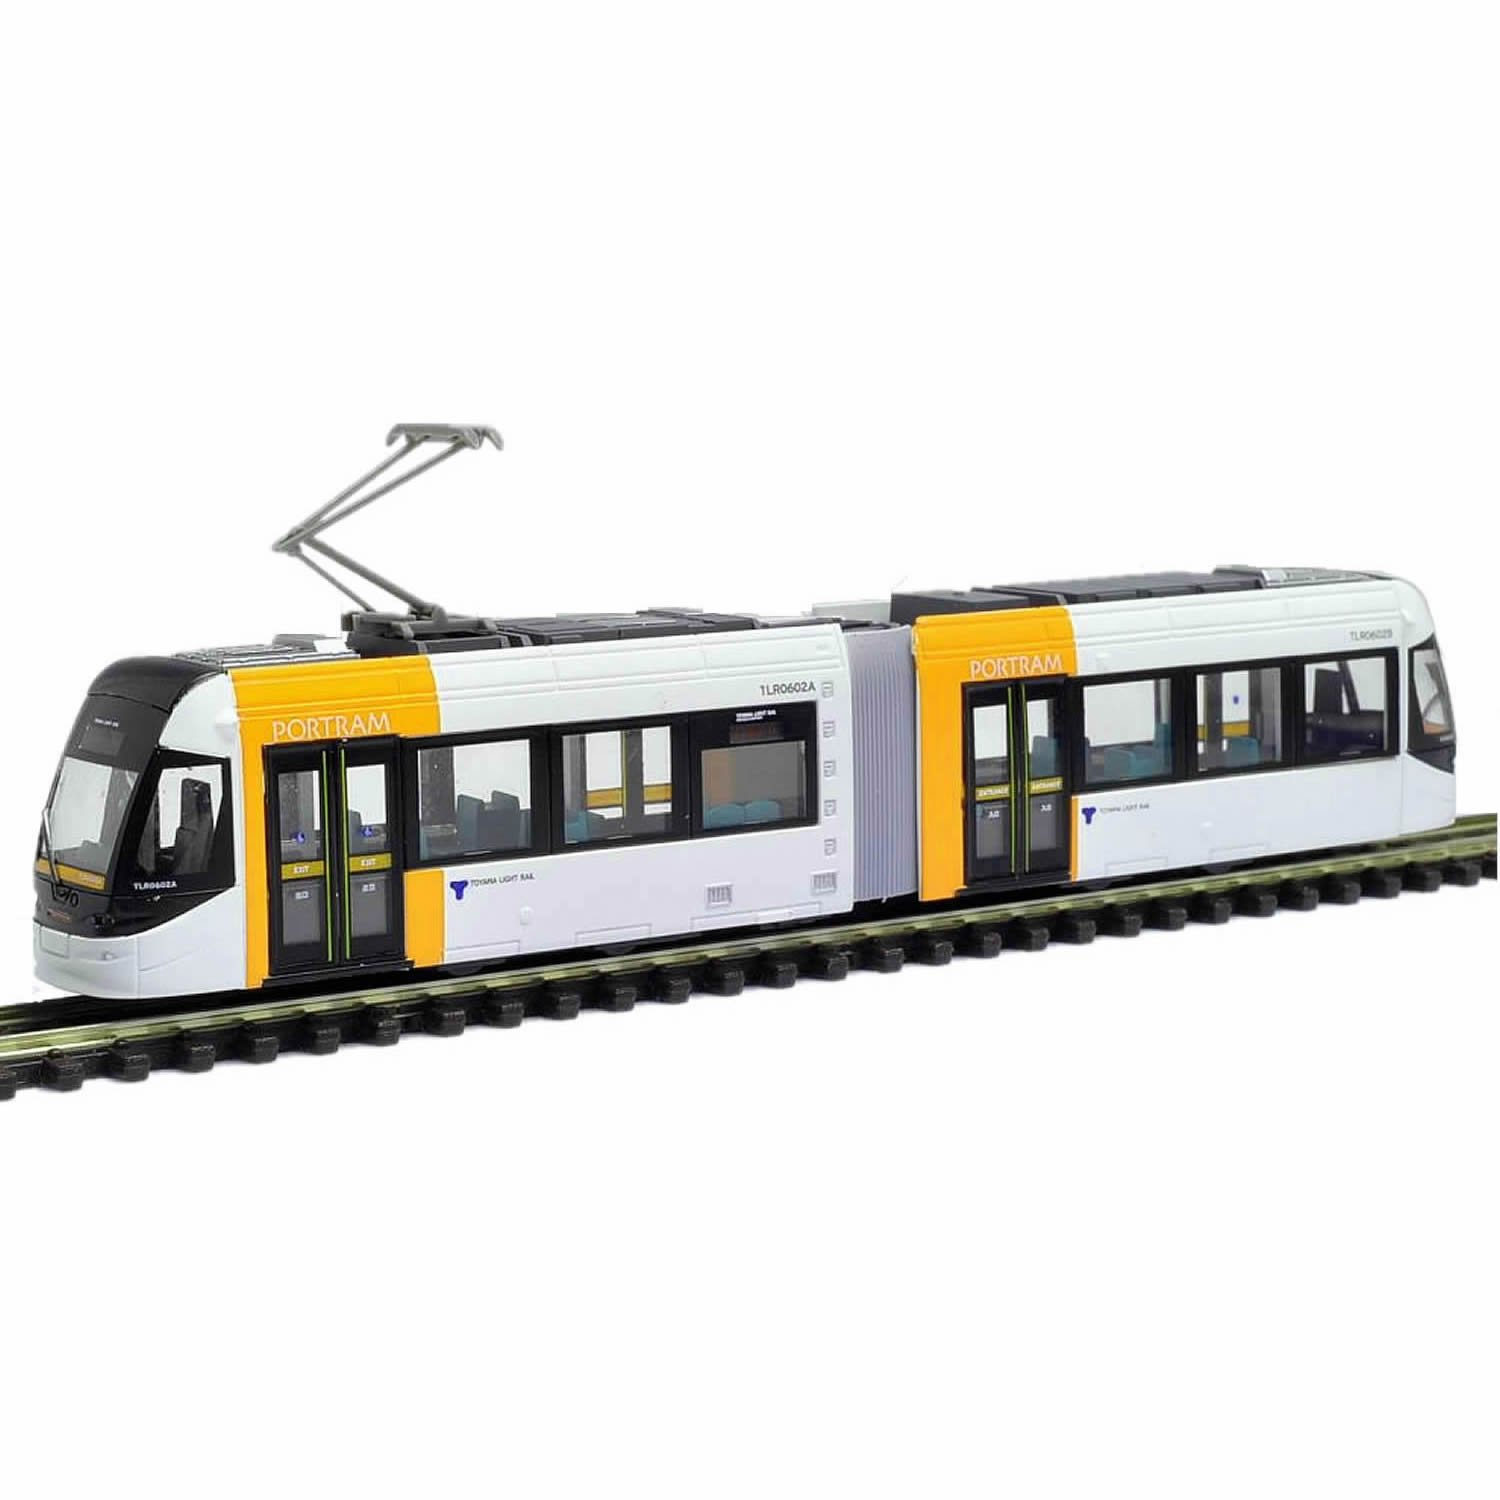 N Gauge / N Scale Tram Articulated Tram in Yellow and White - Light Rail